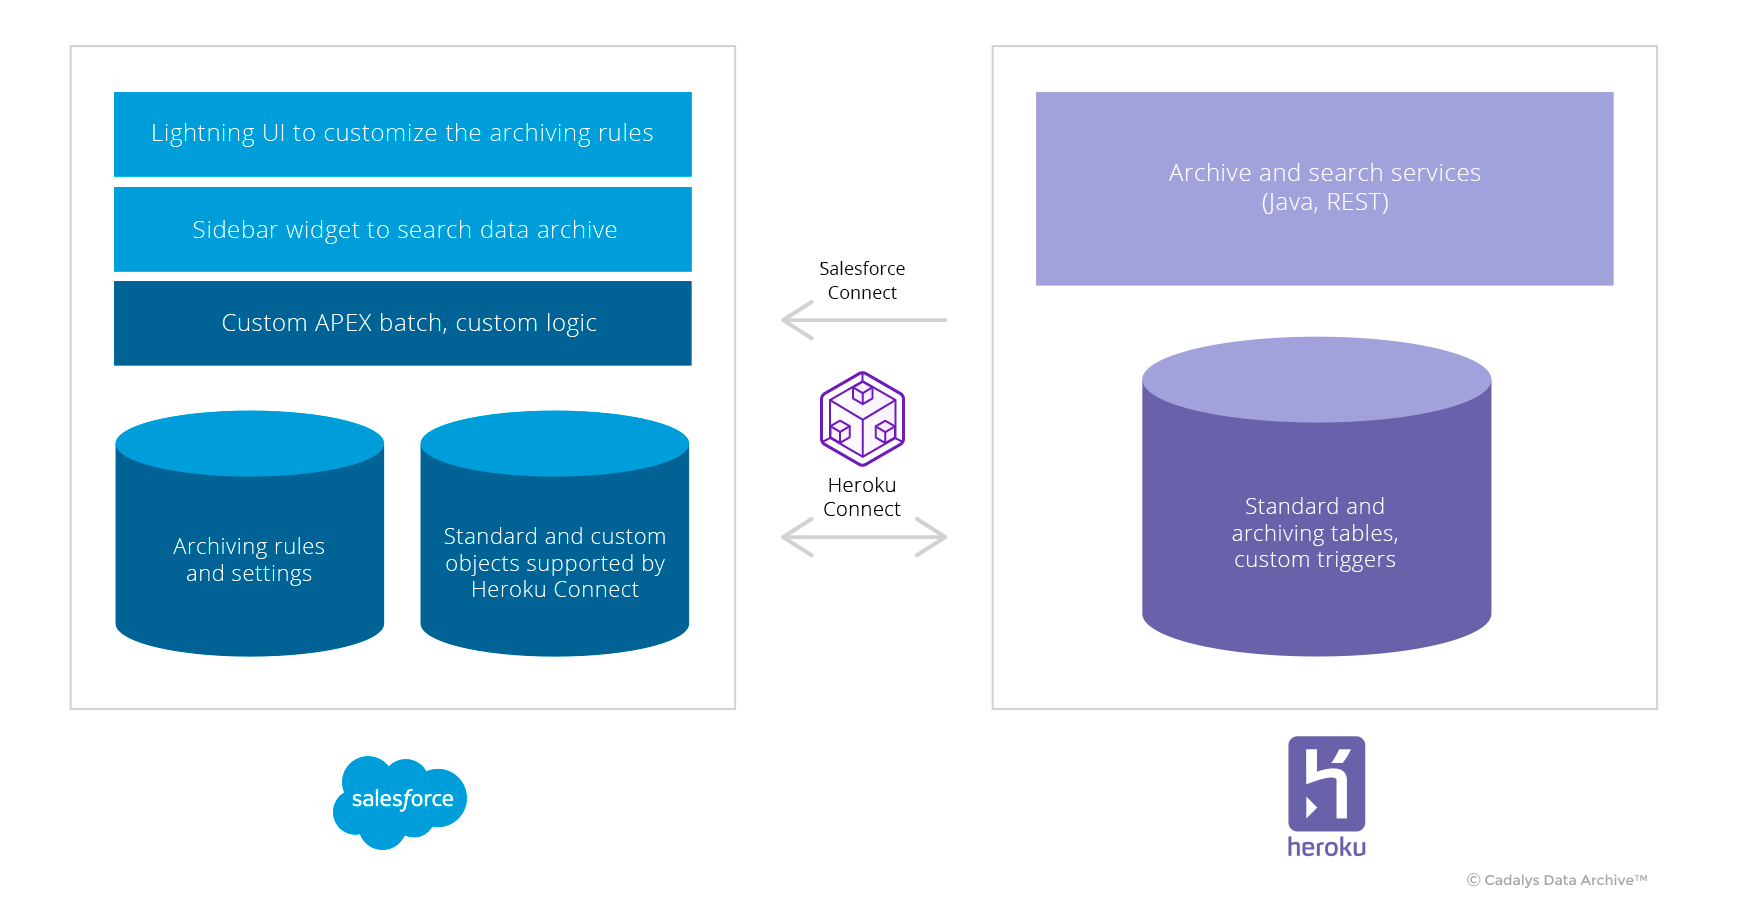 below is the complete architecture diagram of the cadalys data archive™  application